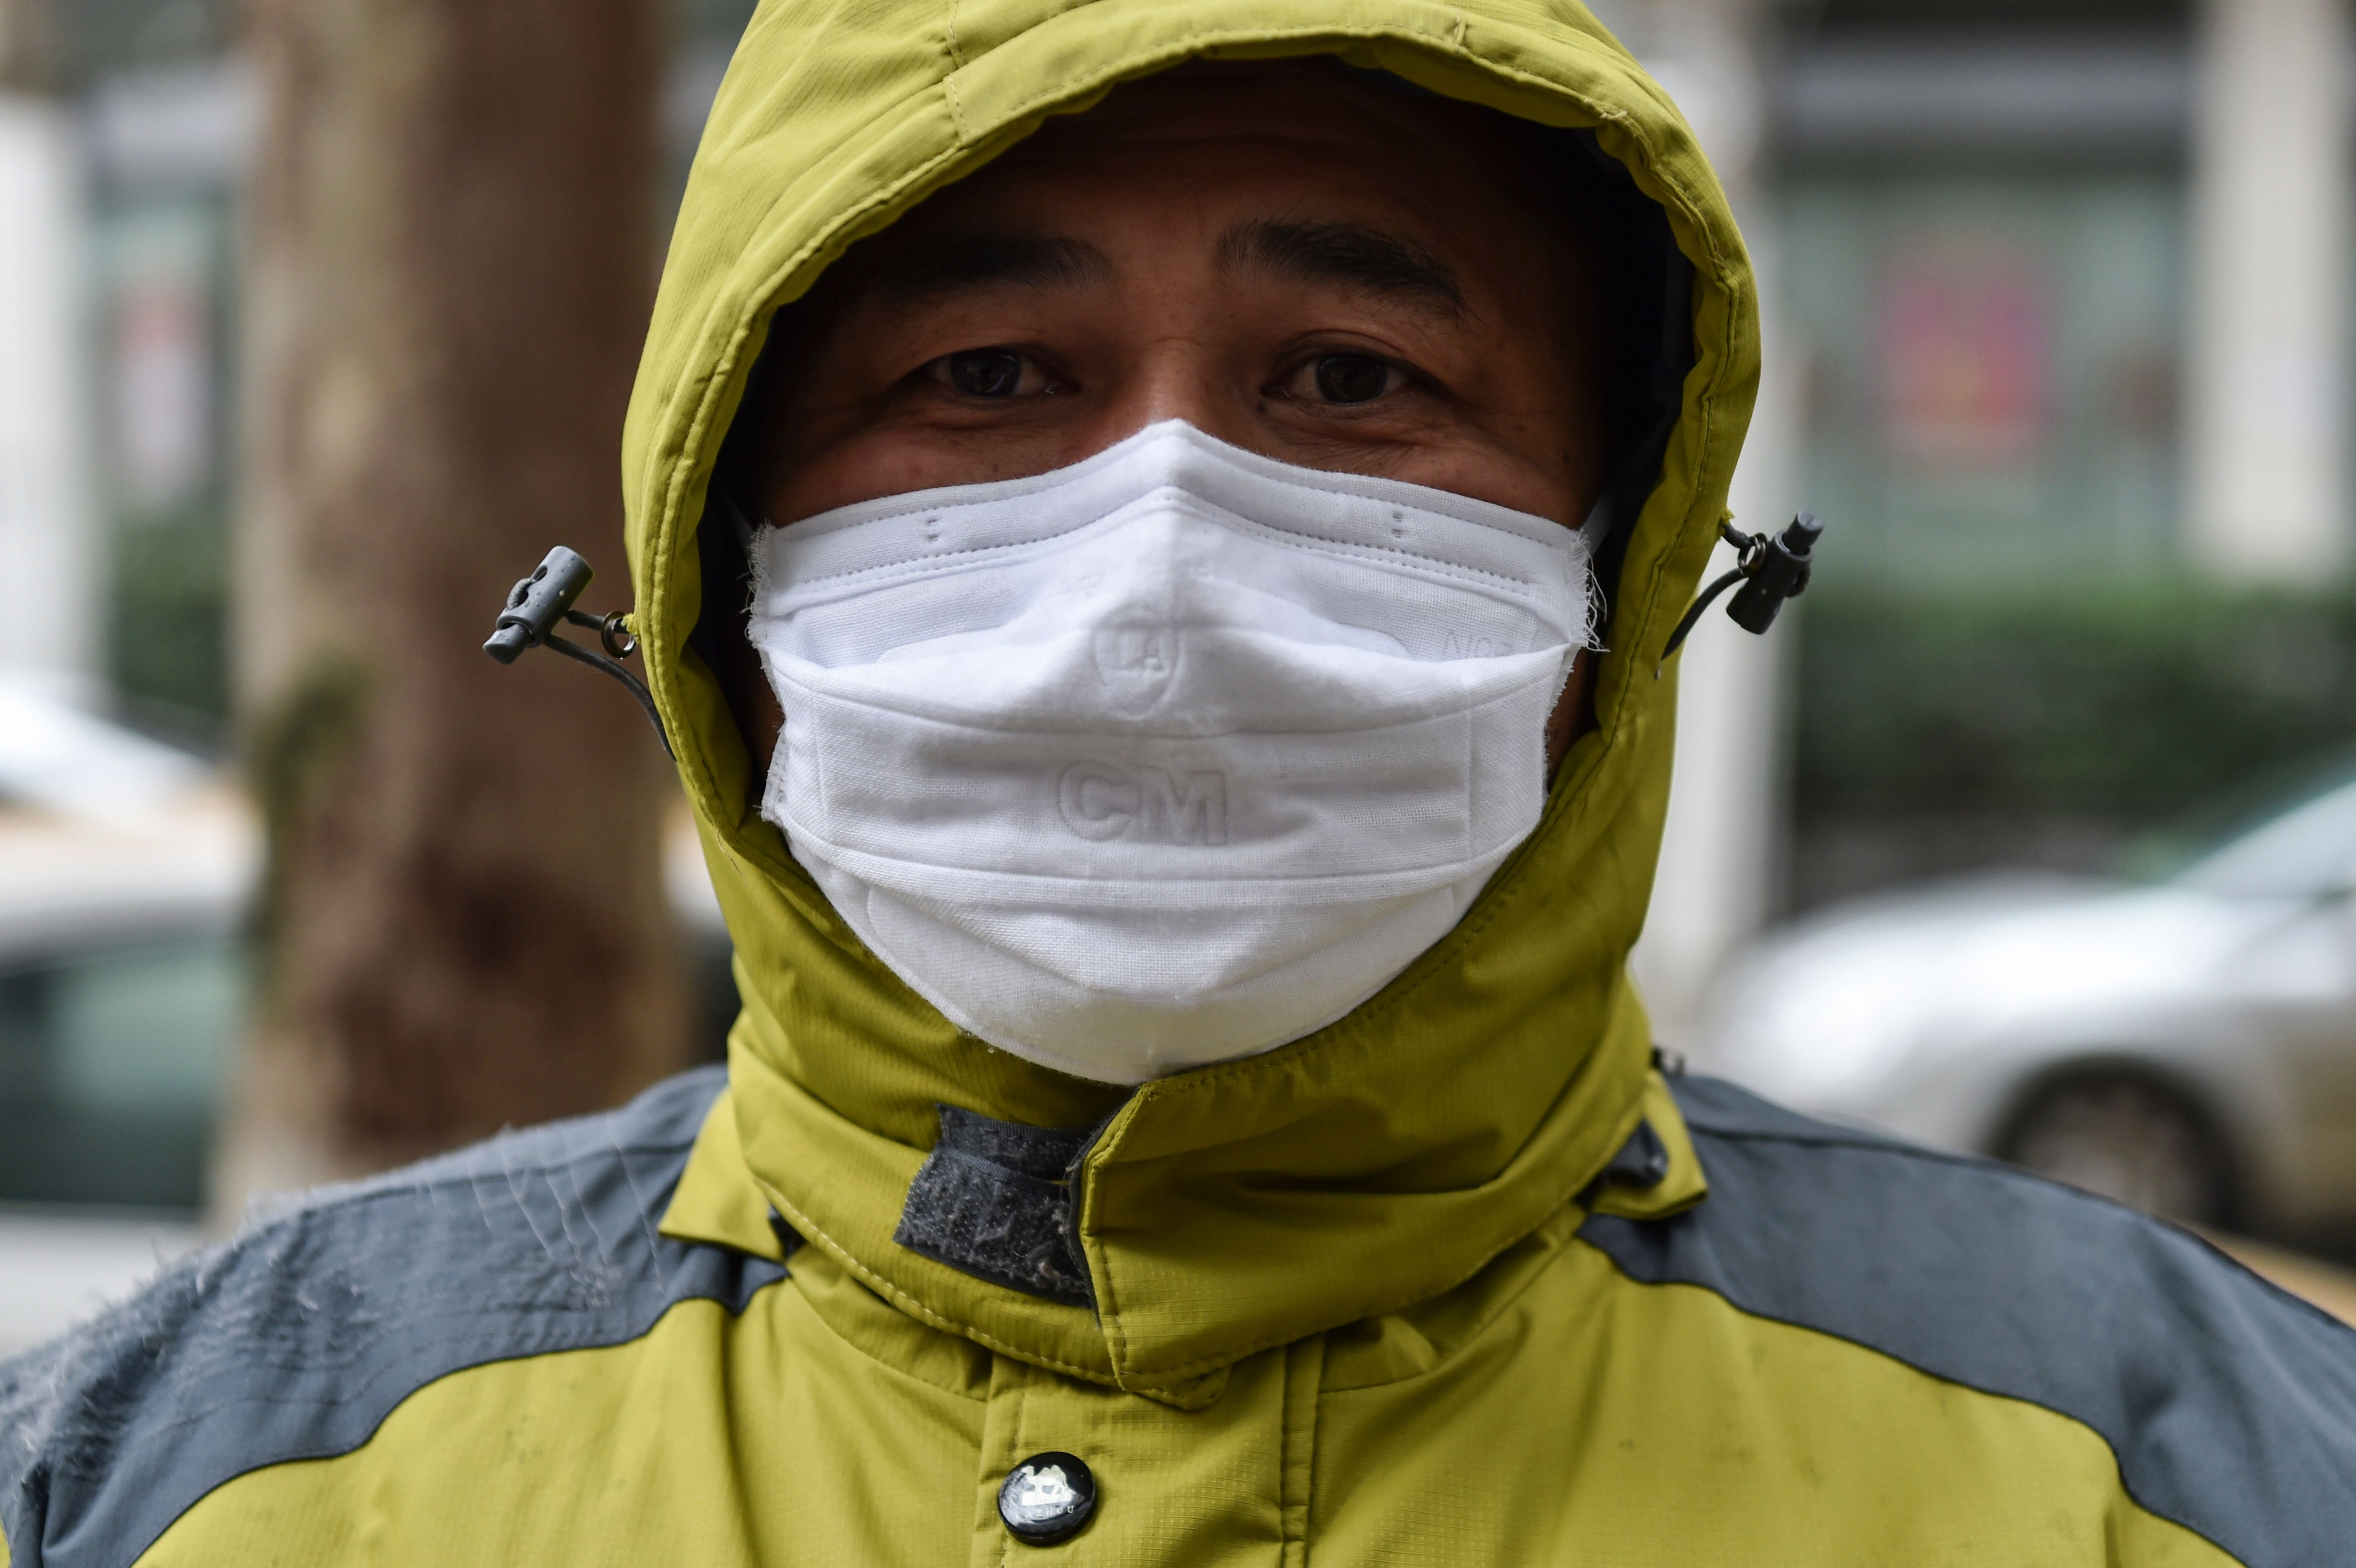 A man who works as a volunteer taking medicine for those who need it waits outside a pharmacy in Wuhan on January 26, 2020, the Chinese city at the epicenter of the coronavirus outbreak